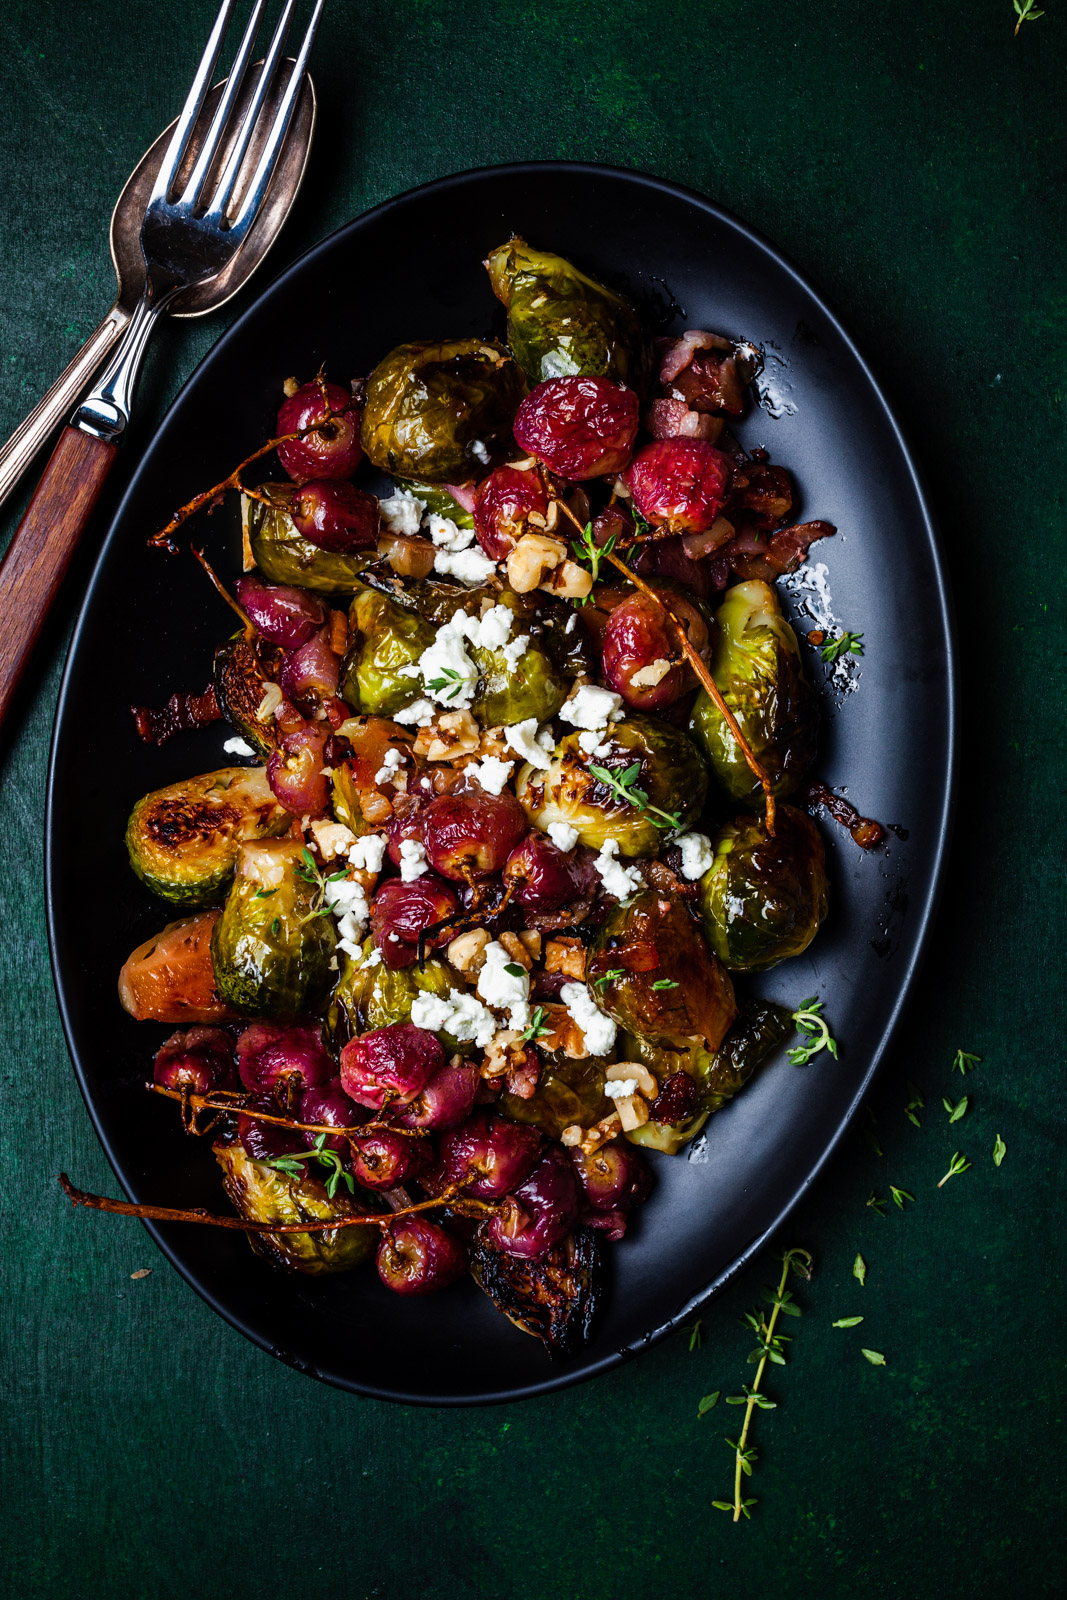 Roasted Brussel Sprouts and Grapes With Bacon